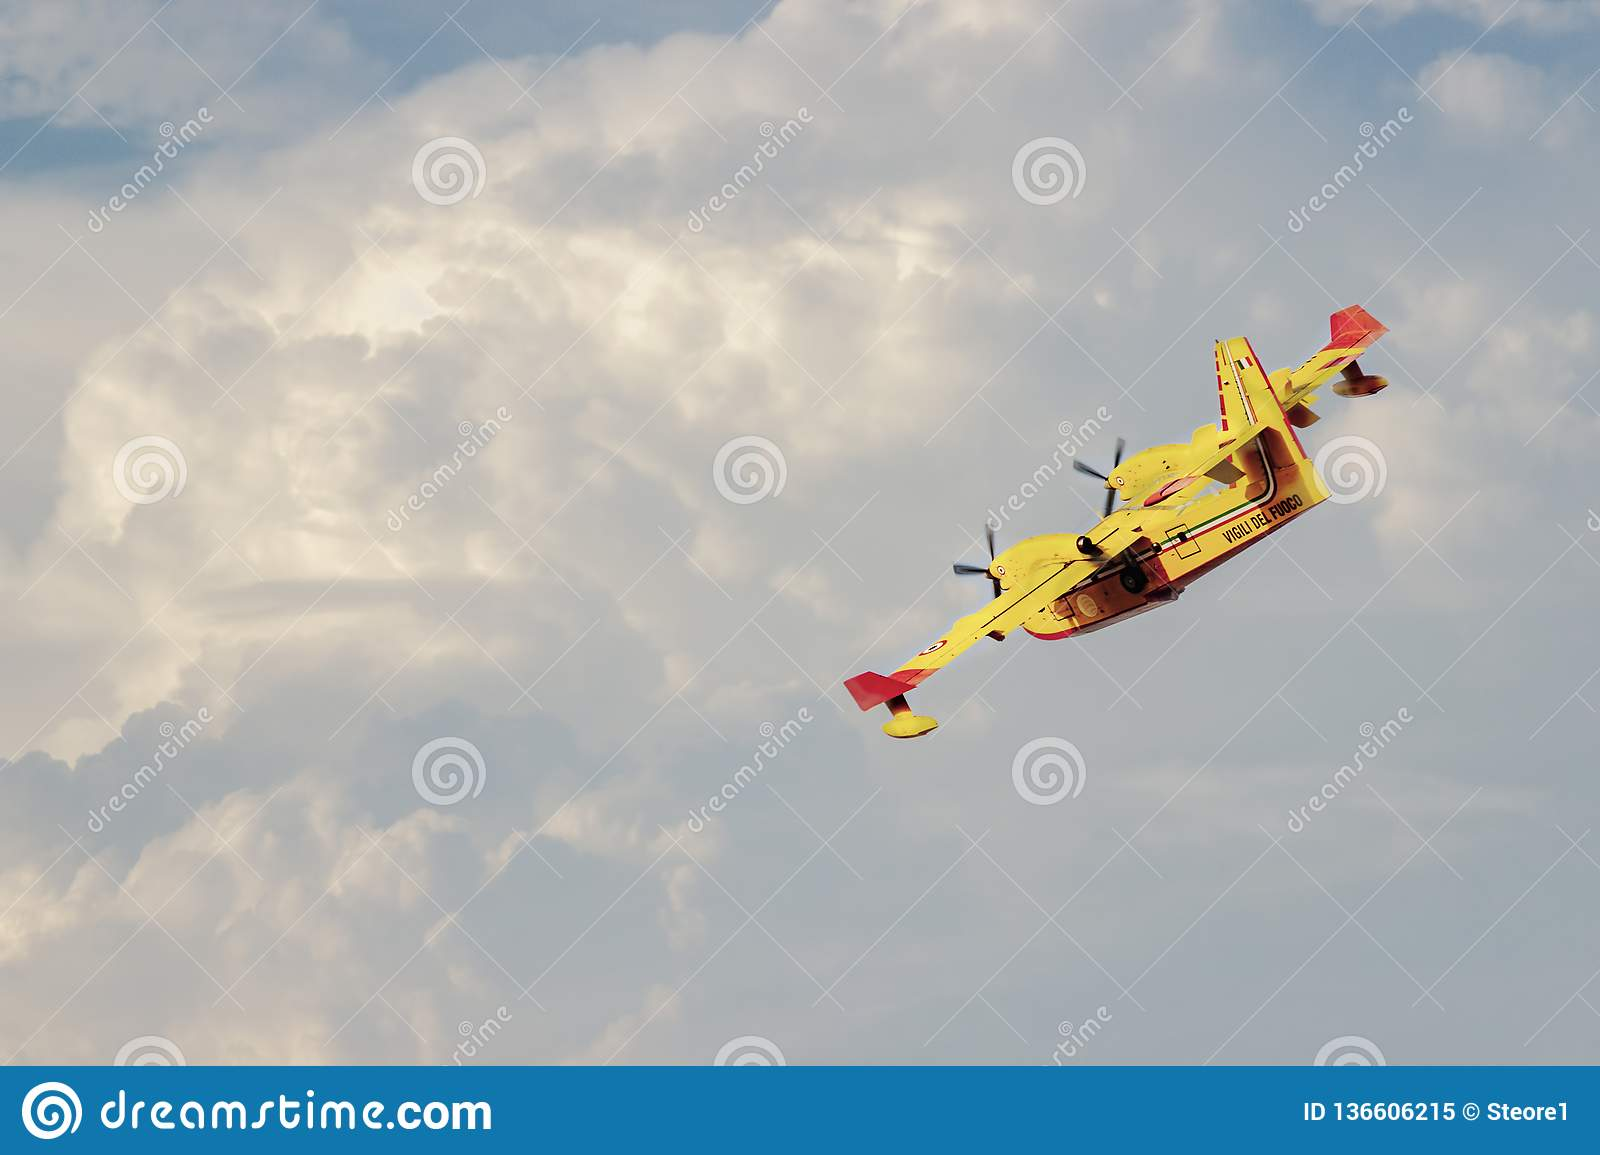 Vicking-Luft 415 Superscoopers